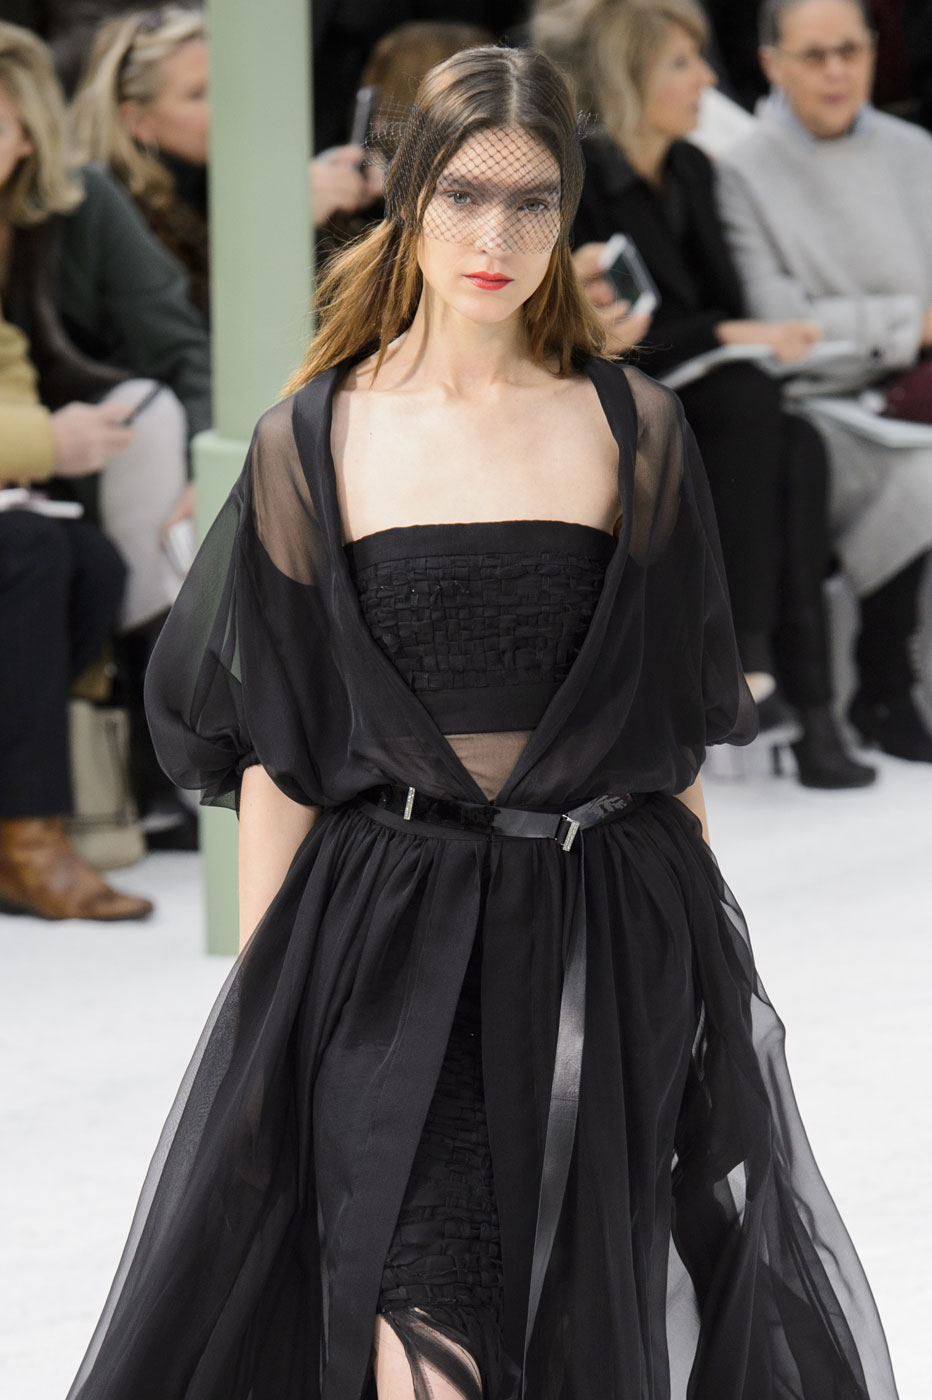 Chanel-fashion-runway-show-haute-couture-paris-spring-summer-2015-the-impression-077